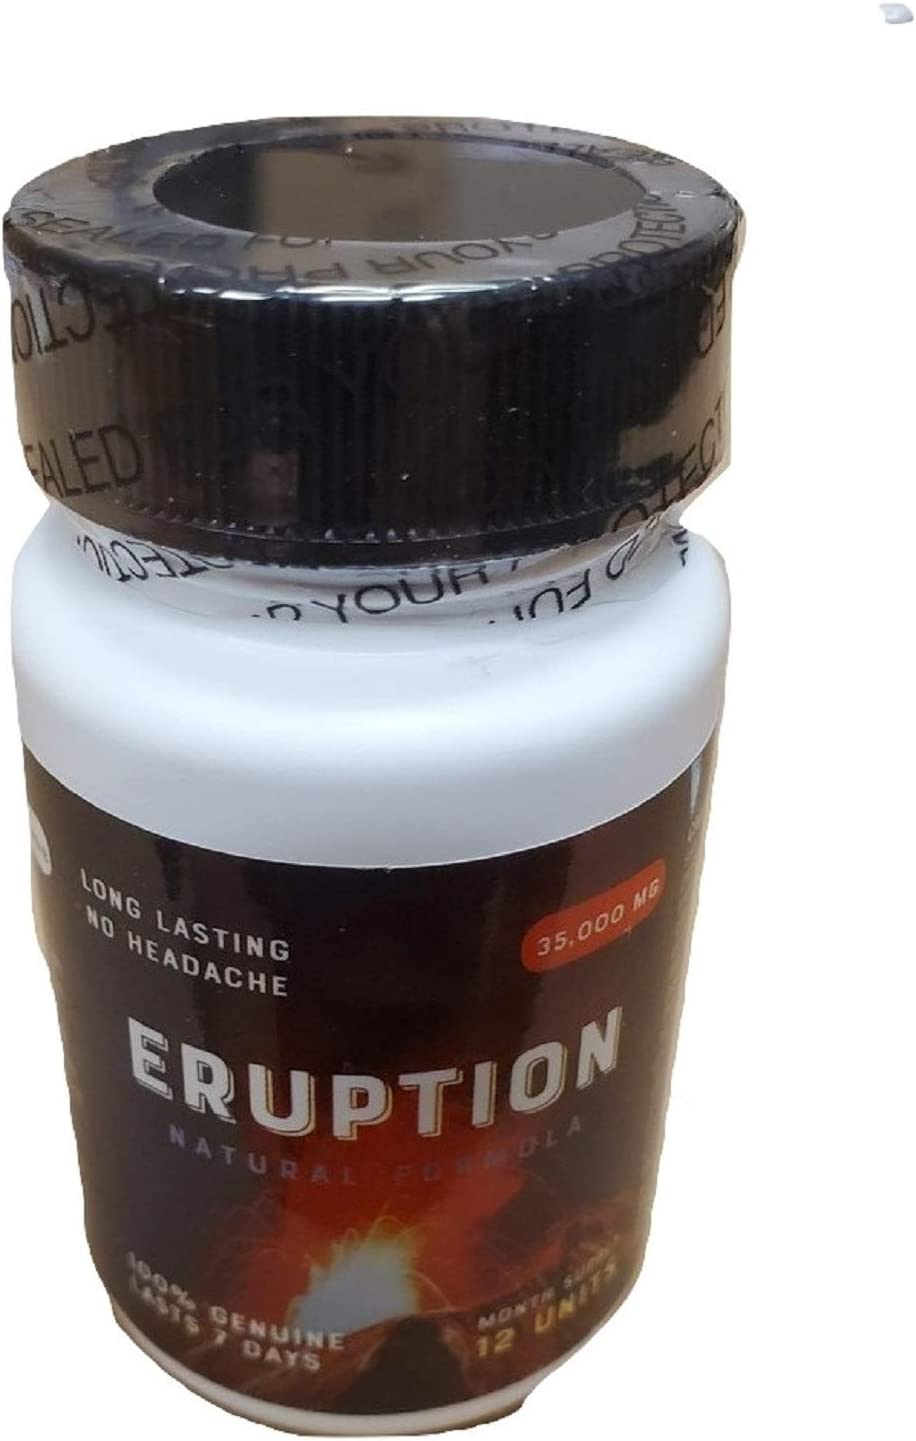 Eruption - 30 Day Supply (12 Capsules) Natural Formula - Male Enhancement Pills for Men - Excellent Male Enhancement Powerful TIME Size Stamina